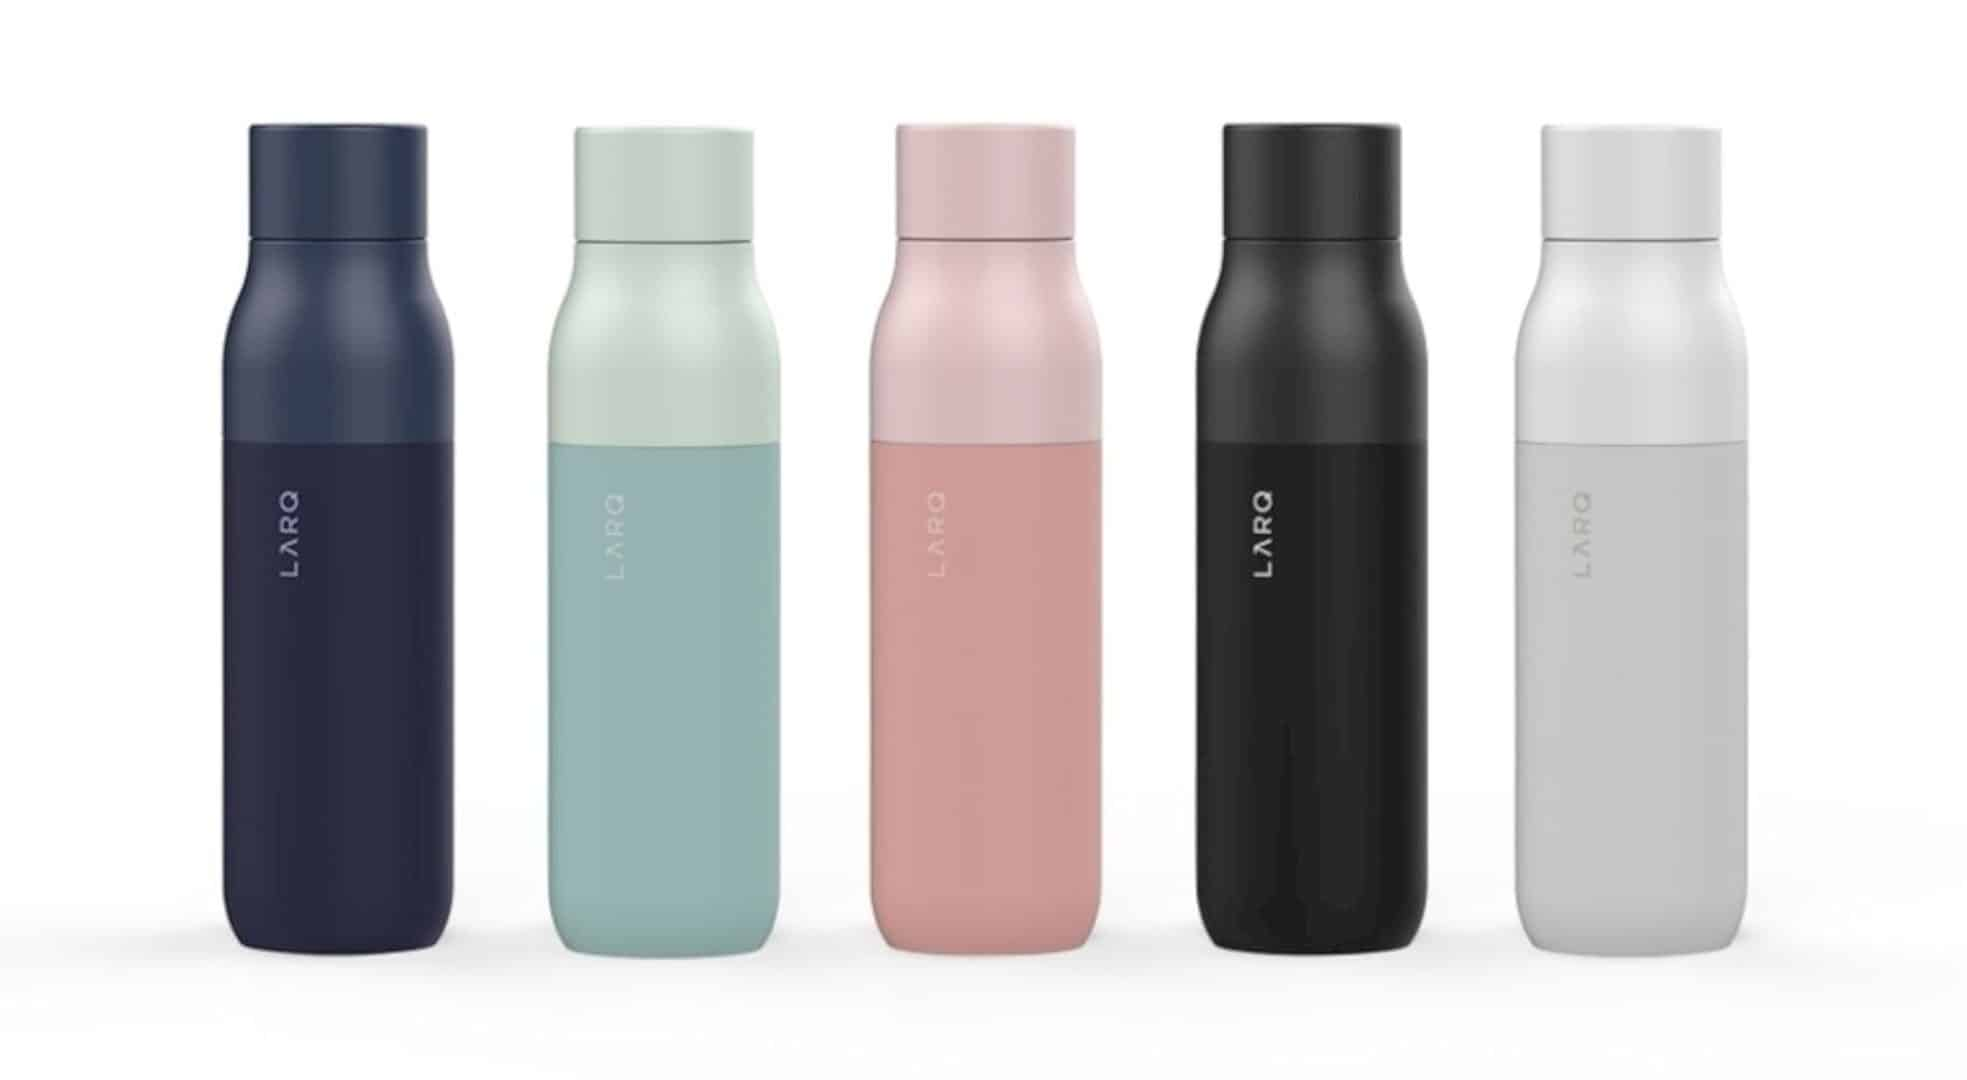 The Larq Bottle 5